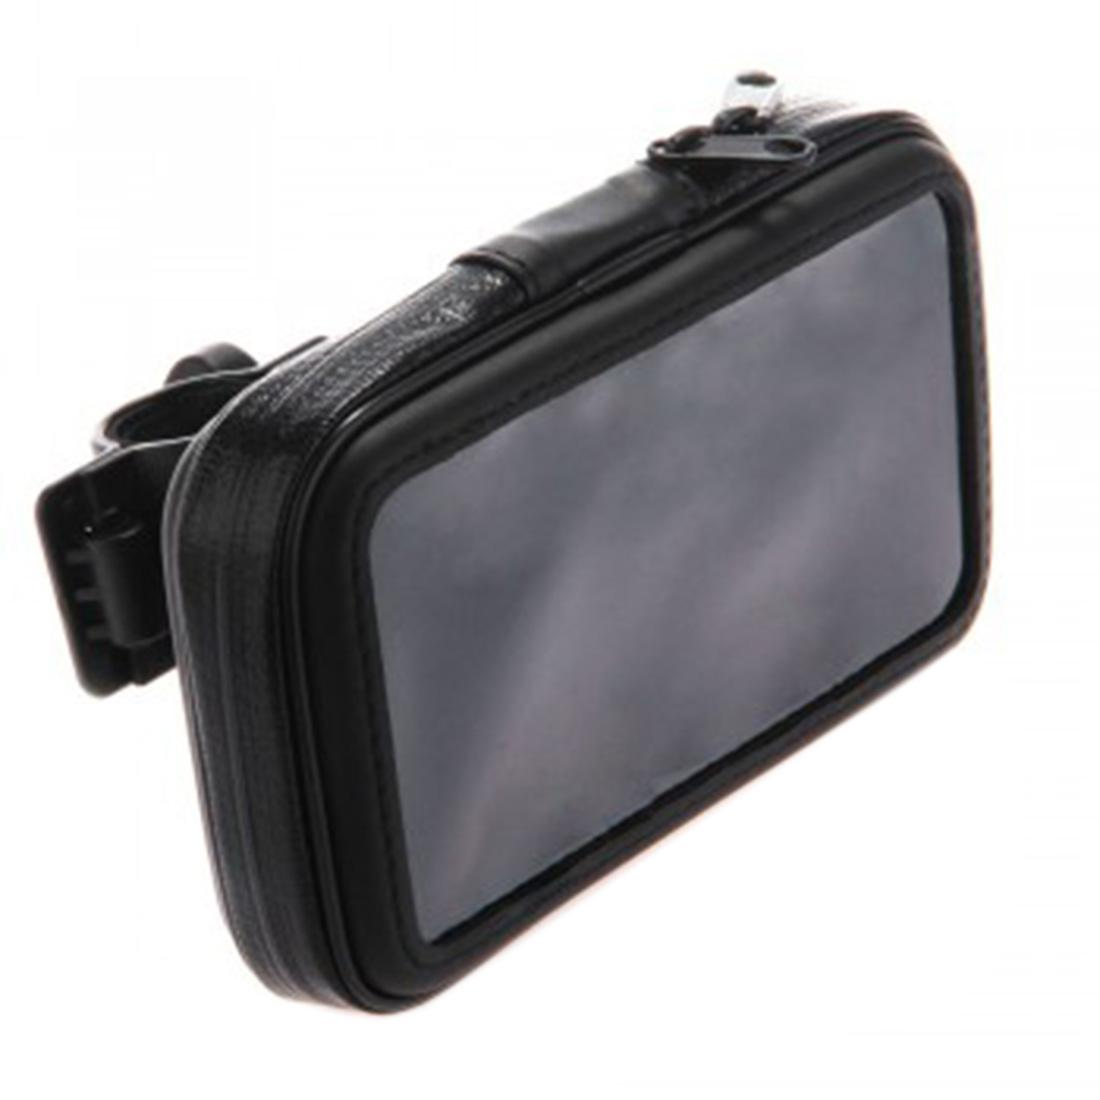 Dewtreetali Bicycle Frame Bike Mobile Phone Holder Waterproof Bag Case with Handlebar Bracket Mount Base for iPhone